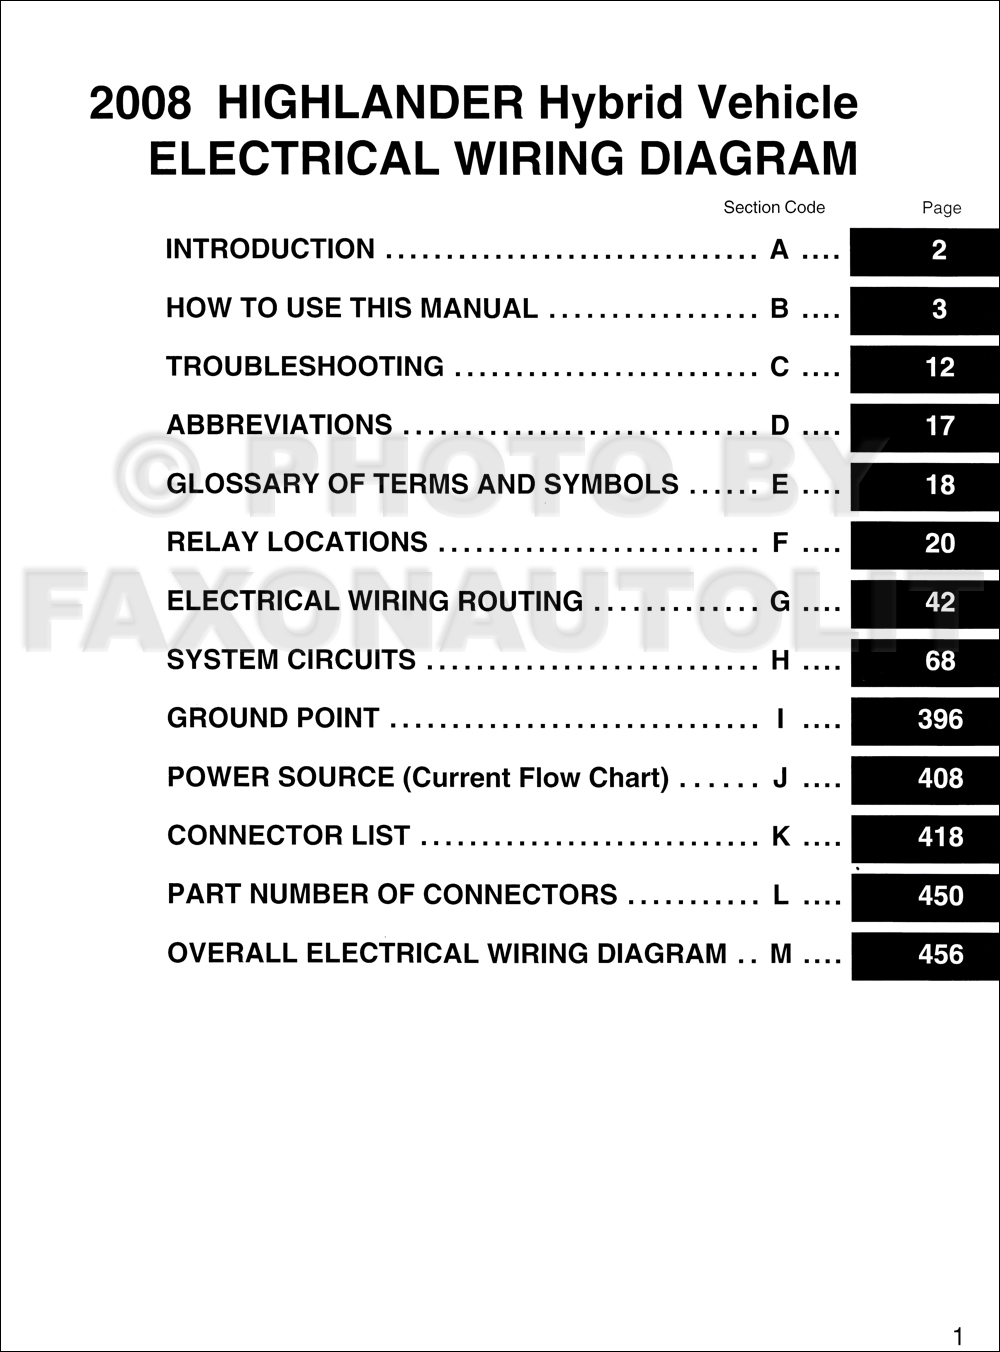 2001 toyota camry jbl stereo wiring diagram 2001 2006 toyota tundra jbl radio wiring diagram wiring diagram and on 2001 toyota camry jbl stereo